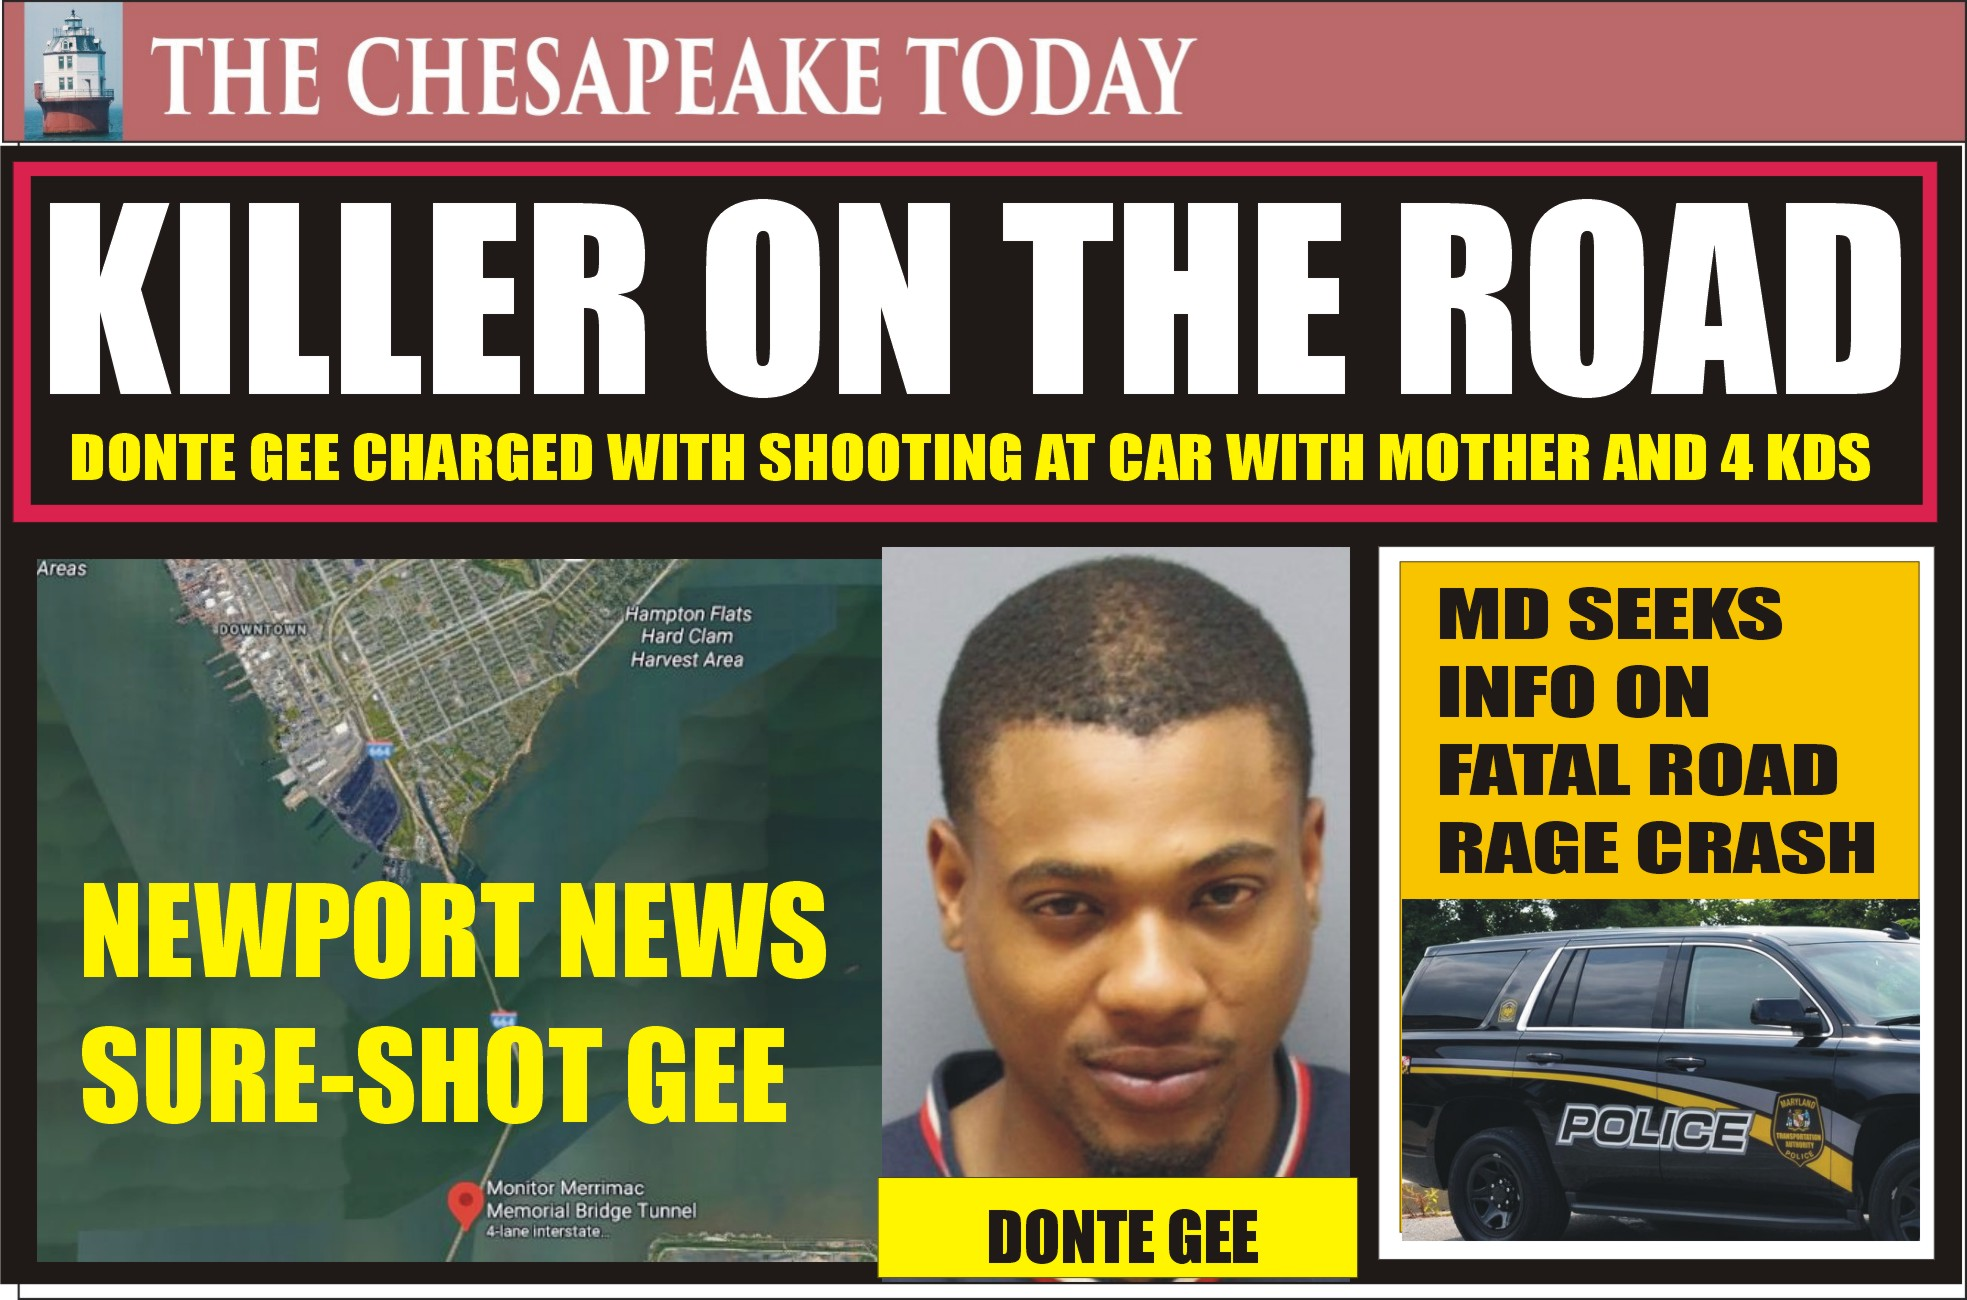 SHOOTING IN TRAFFIC: Newport News Cab Driver Donte Gee held without bond for shooting at a car with mom and her four kids inside; MD Transportation Police seek aid in finding vehicle involved in road rage fatality